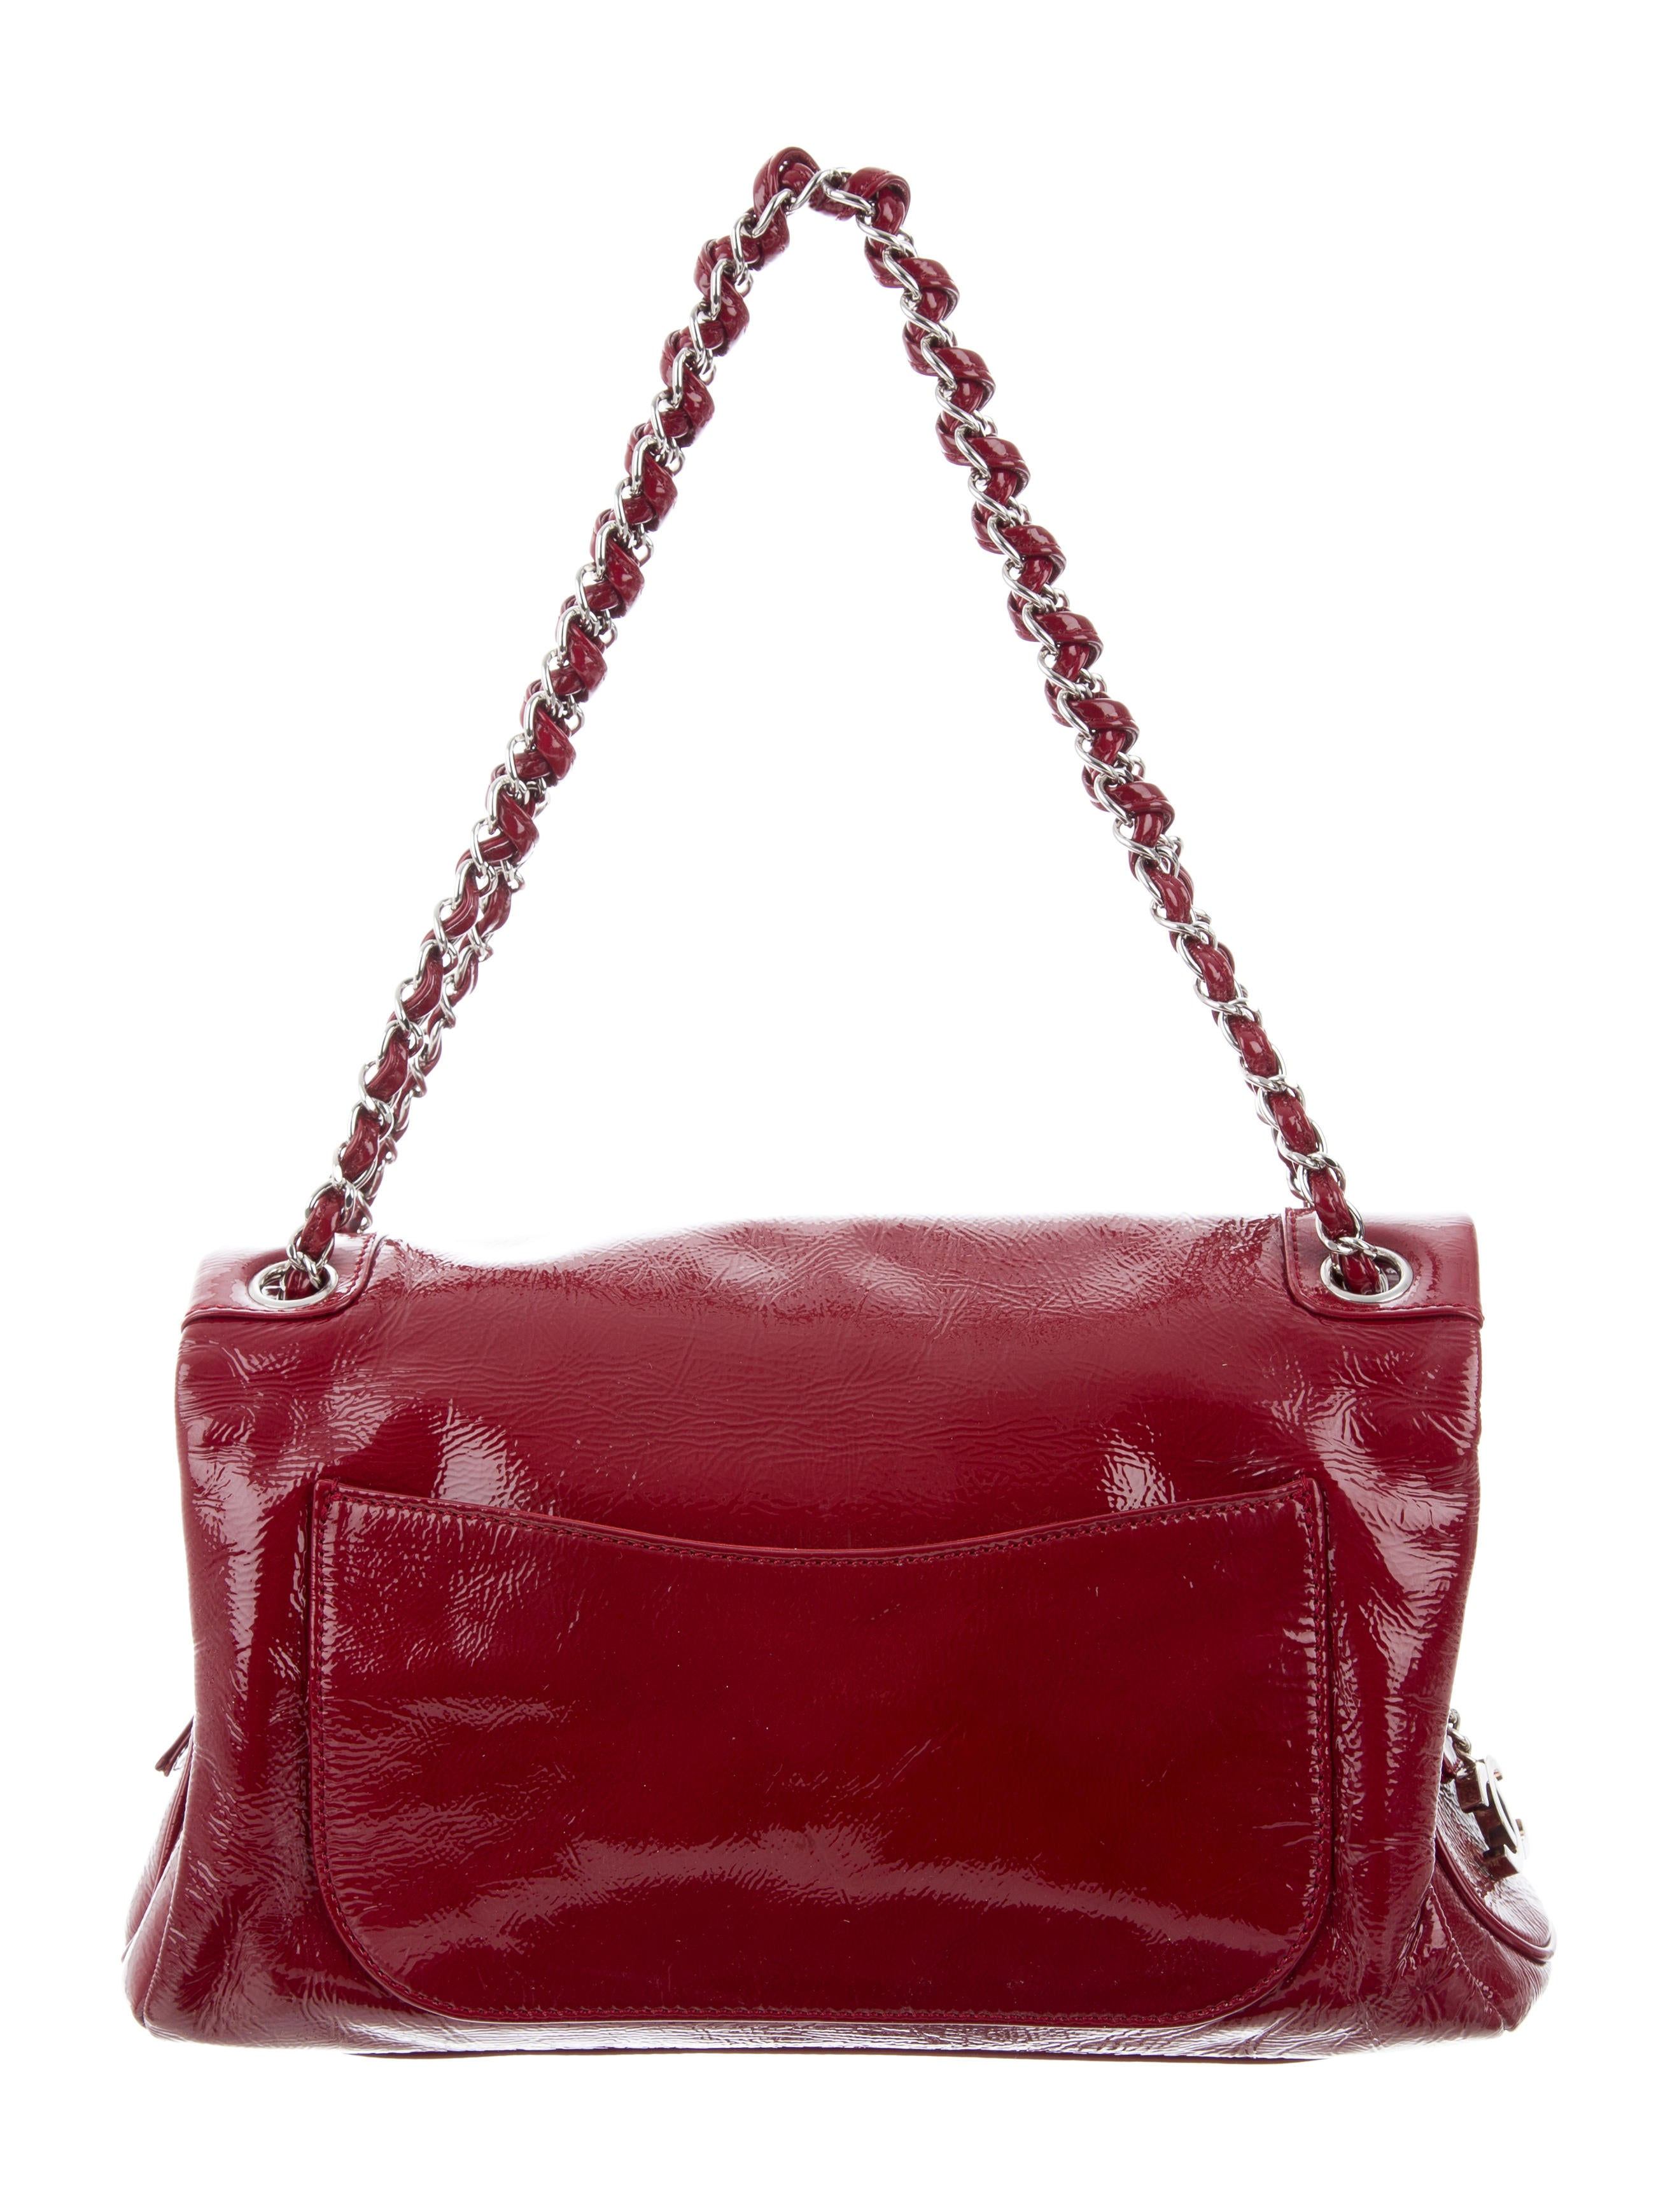 793801d96c1e Chanel Modern Chain Flap Bag | Stanford Center for Opportunity ...